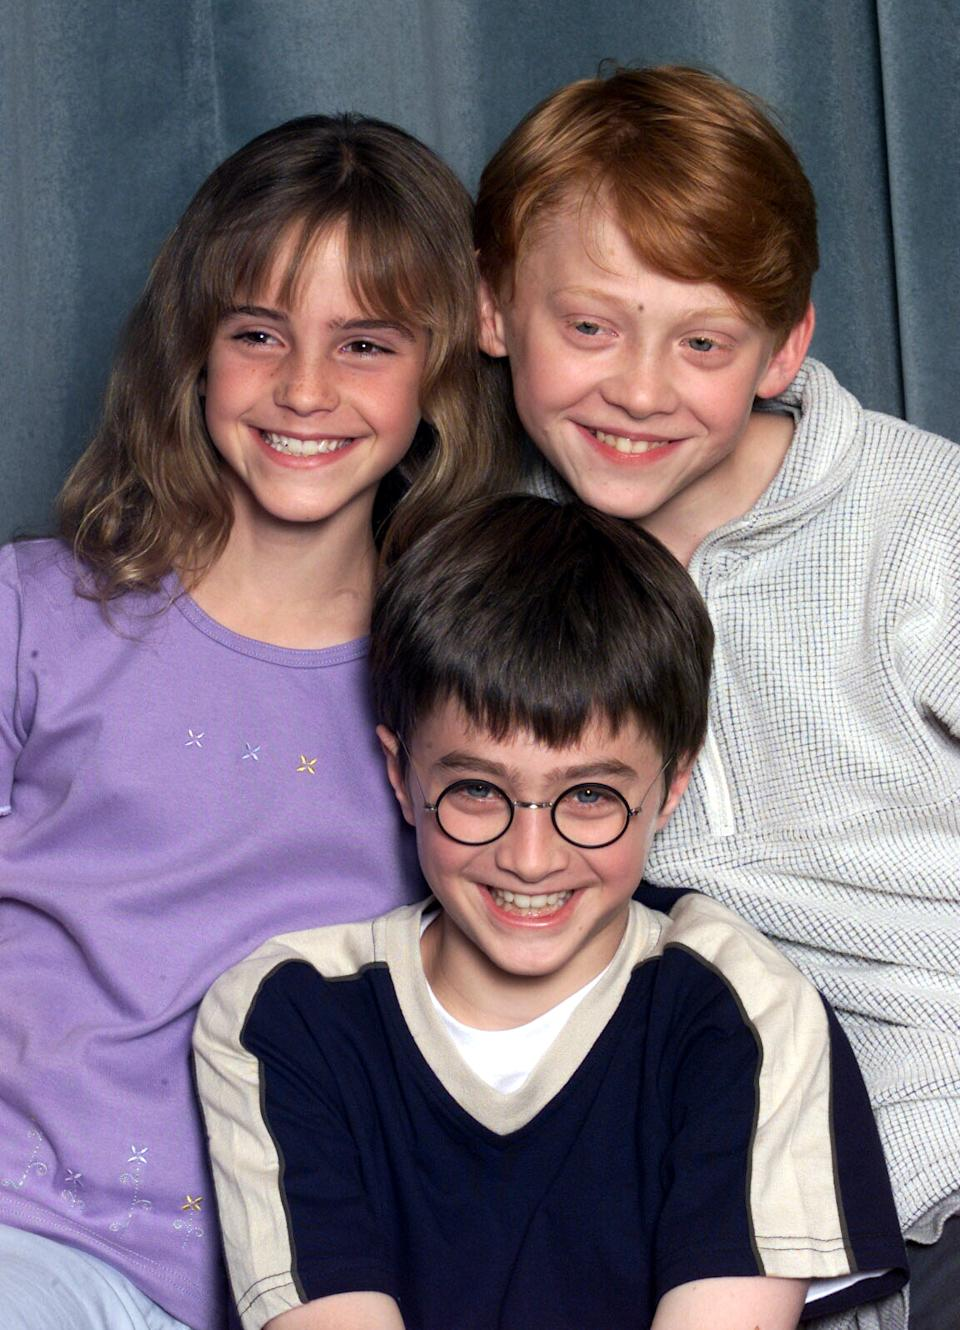 "LONDON - AUGUST 23: Actors Emma Watson (L), Daniel Radcliffe (C) and Rupert Grint (R) attend a press conference for the movie ""Harry Potter and The Philosopher's Stone"" in London on August 23, 2000. They are to play the main characters of Hermione Granger, Harry Potter and Ron Weasley in the film of the popular book by JK Rowling. (Photo by Dave Hogan/Getty Images)"